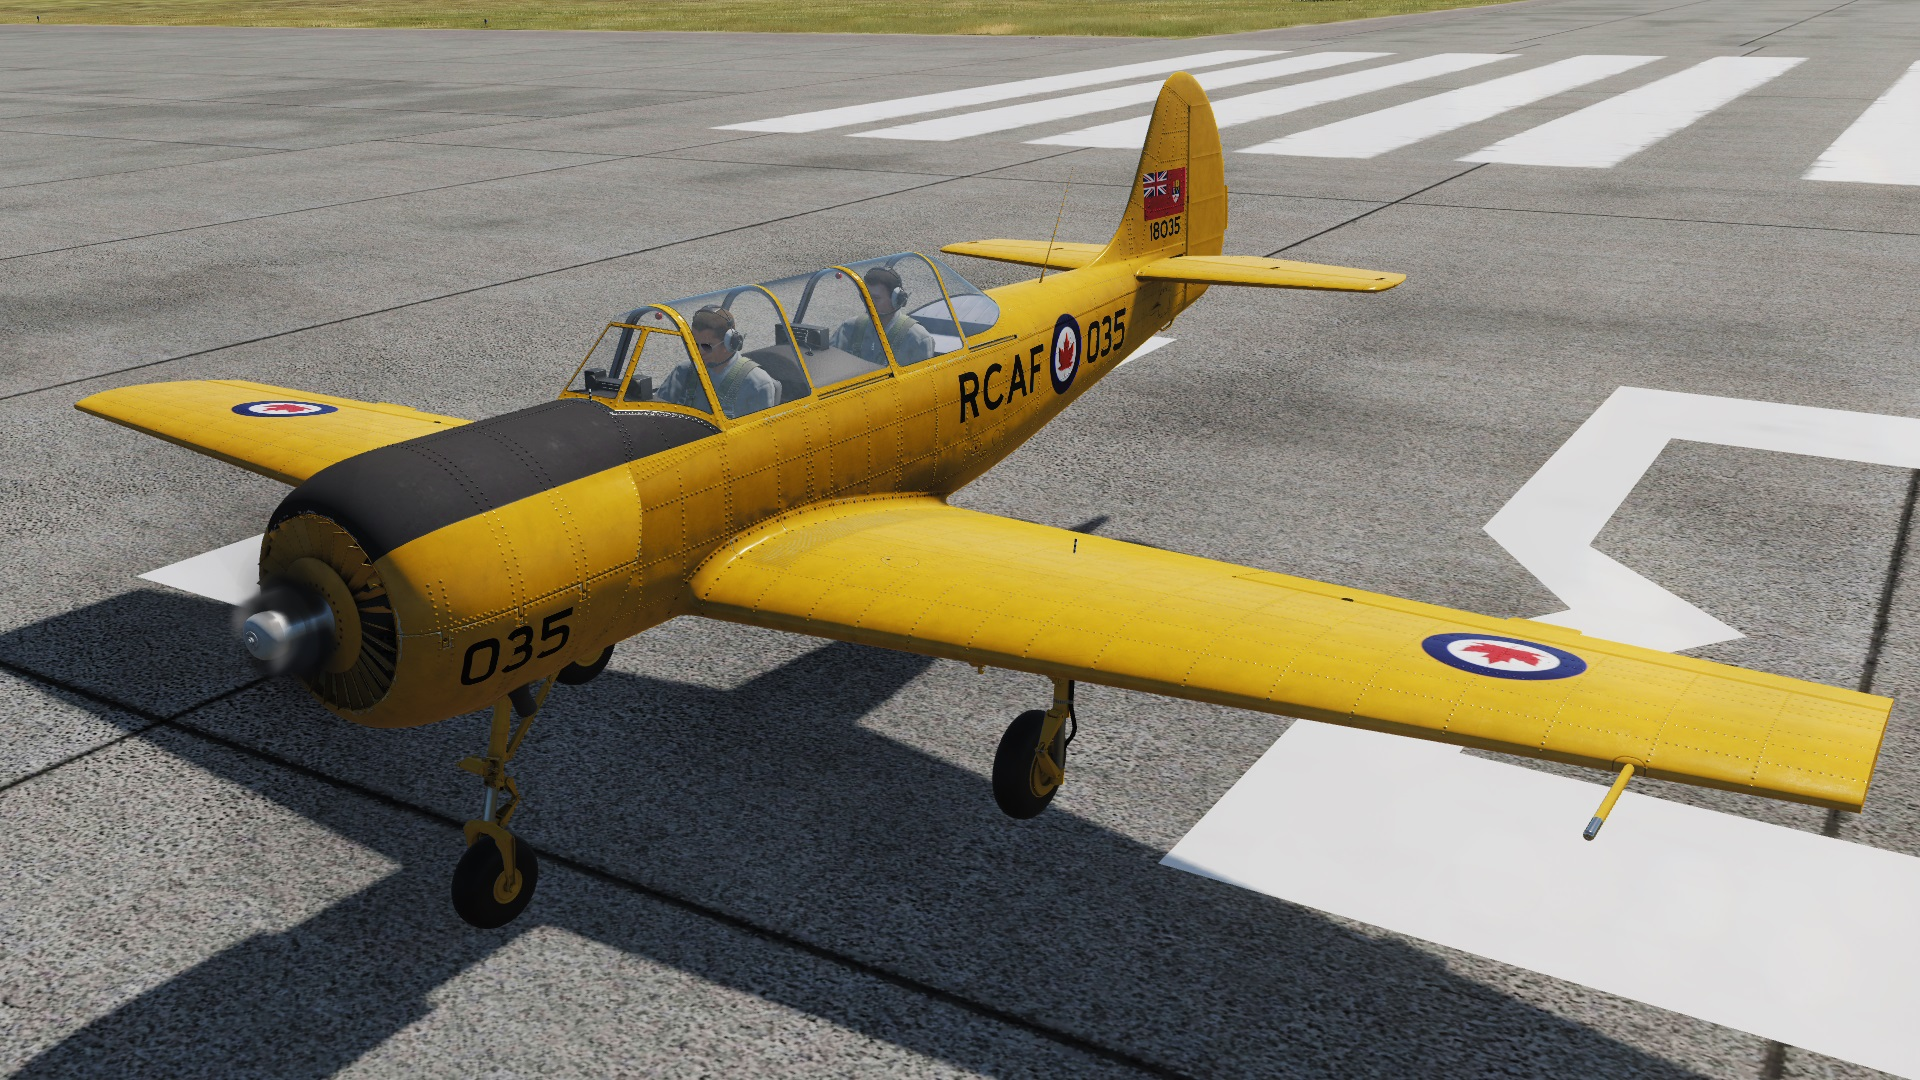 RCAF Fictional Yak-52 Livery